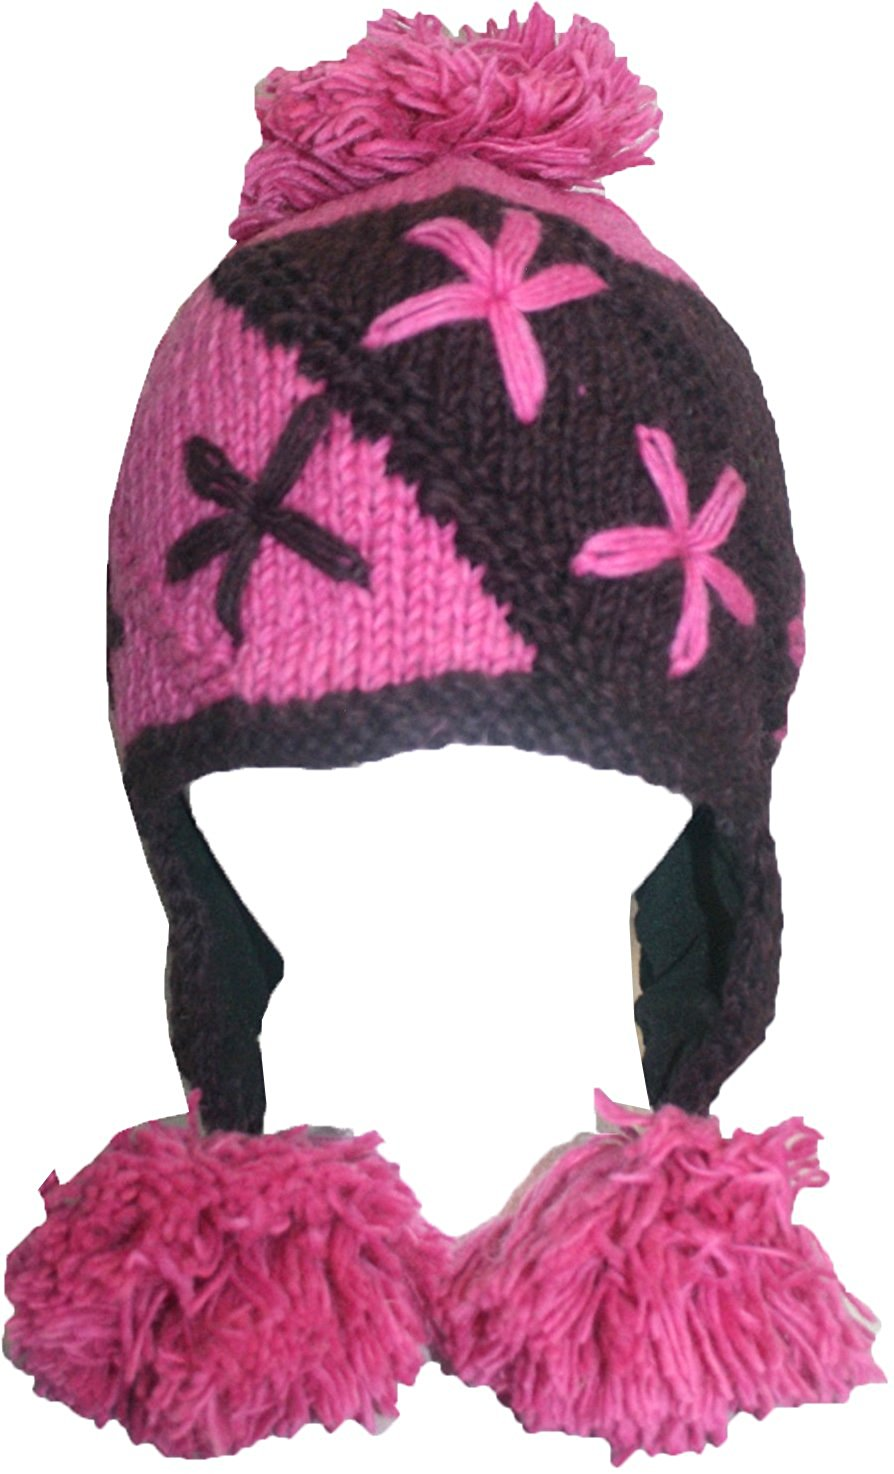 Highland Wool Knit Beanie Fleece Earflap Beanies - Agan Traders, 1410 BP H